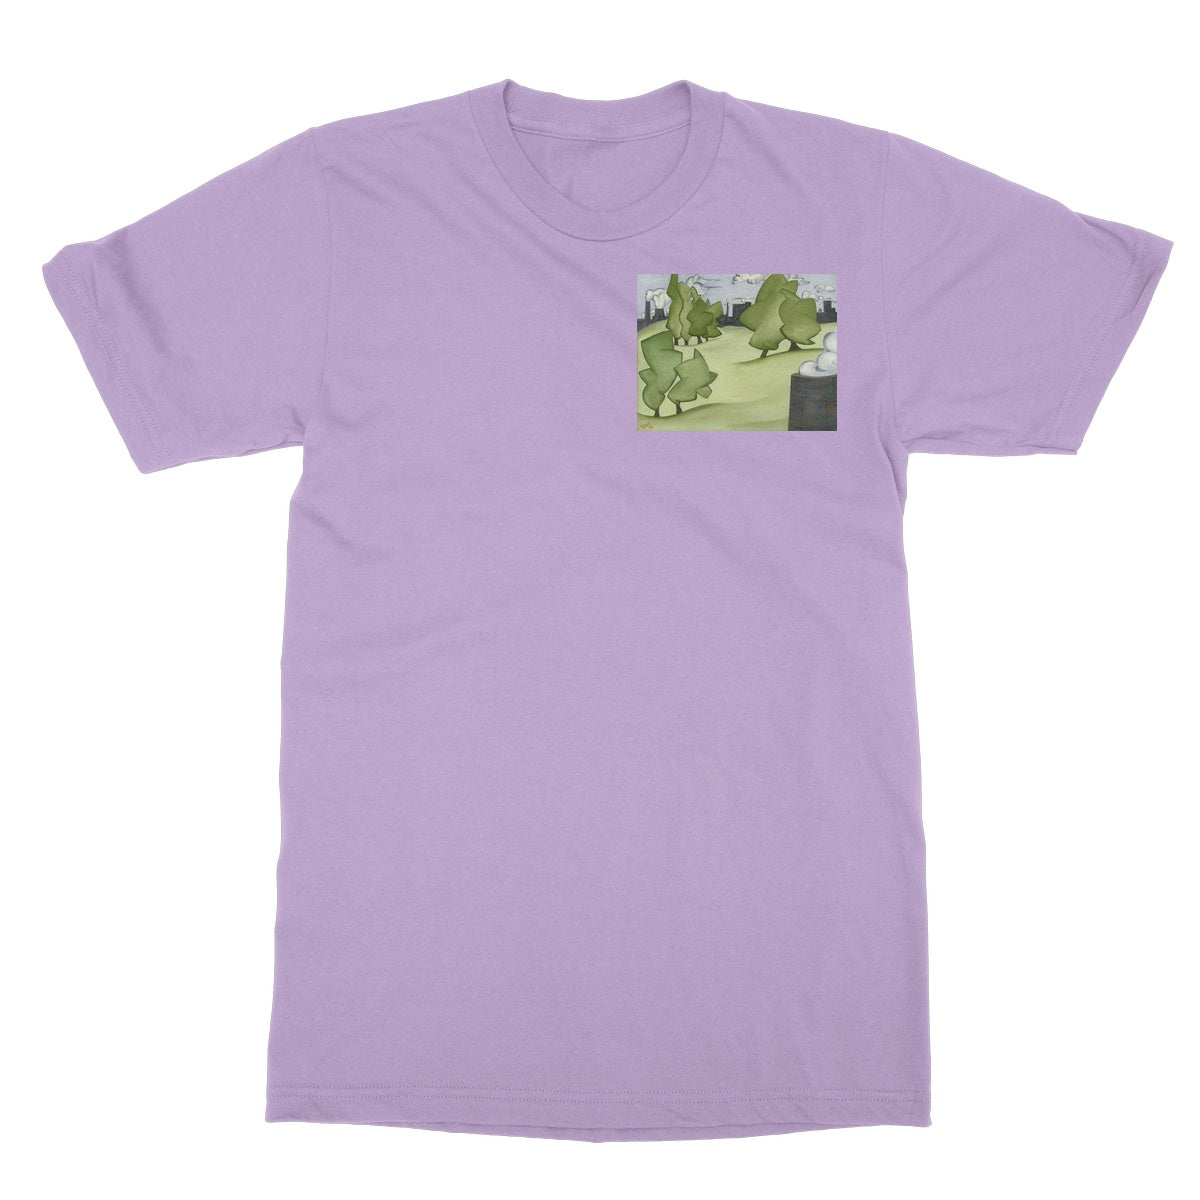 The Park Softstyle T-Shirt